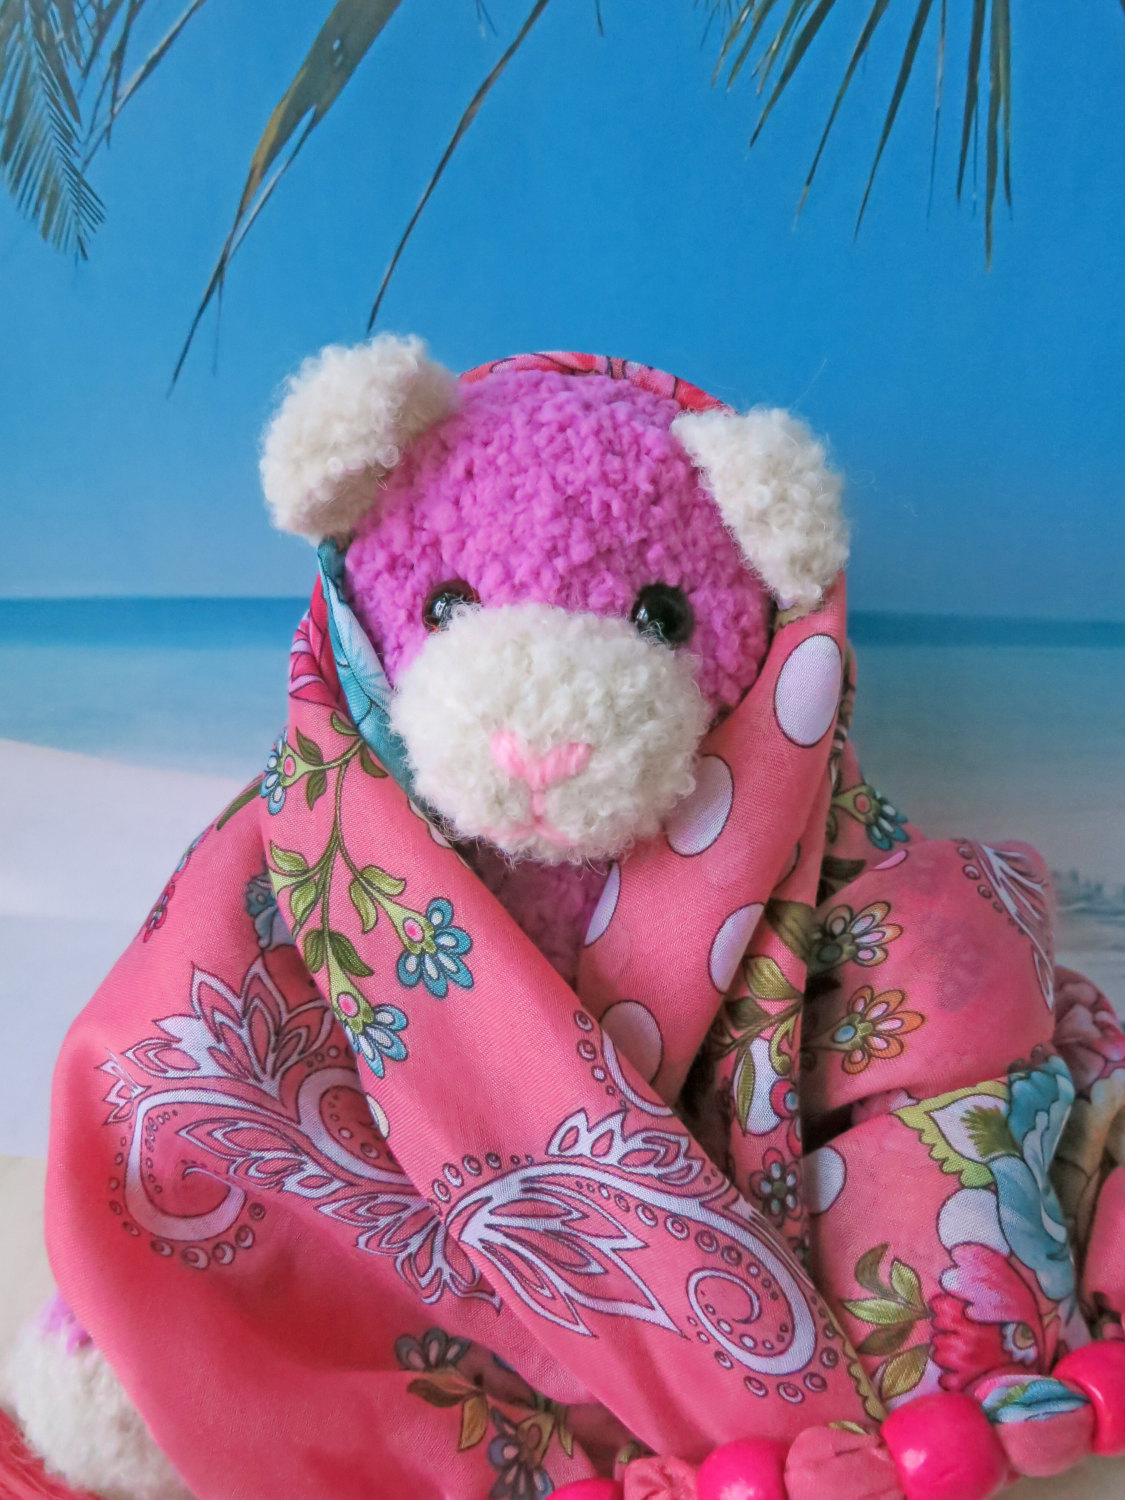 Handmade Fluffy Teddy Bear - collectible stuffed toy - OOAK - pink